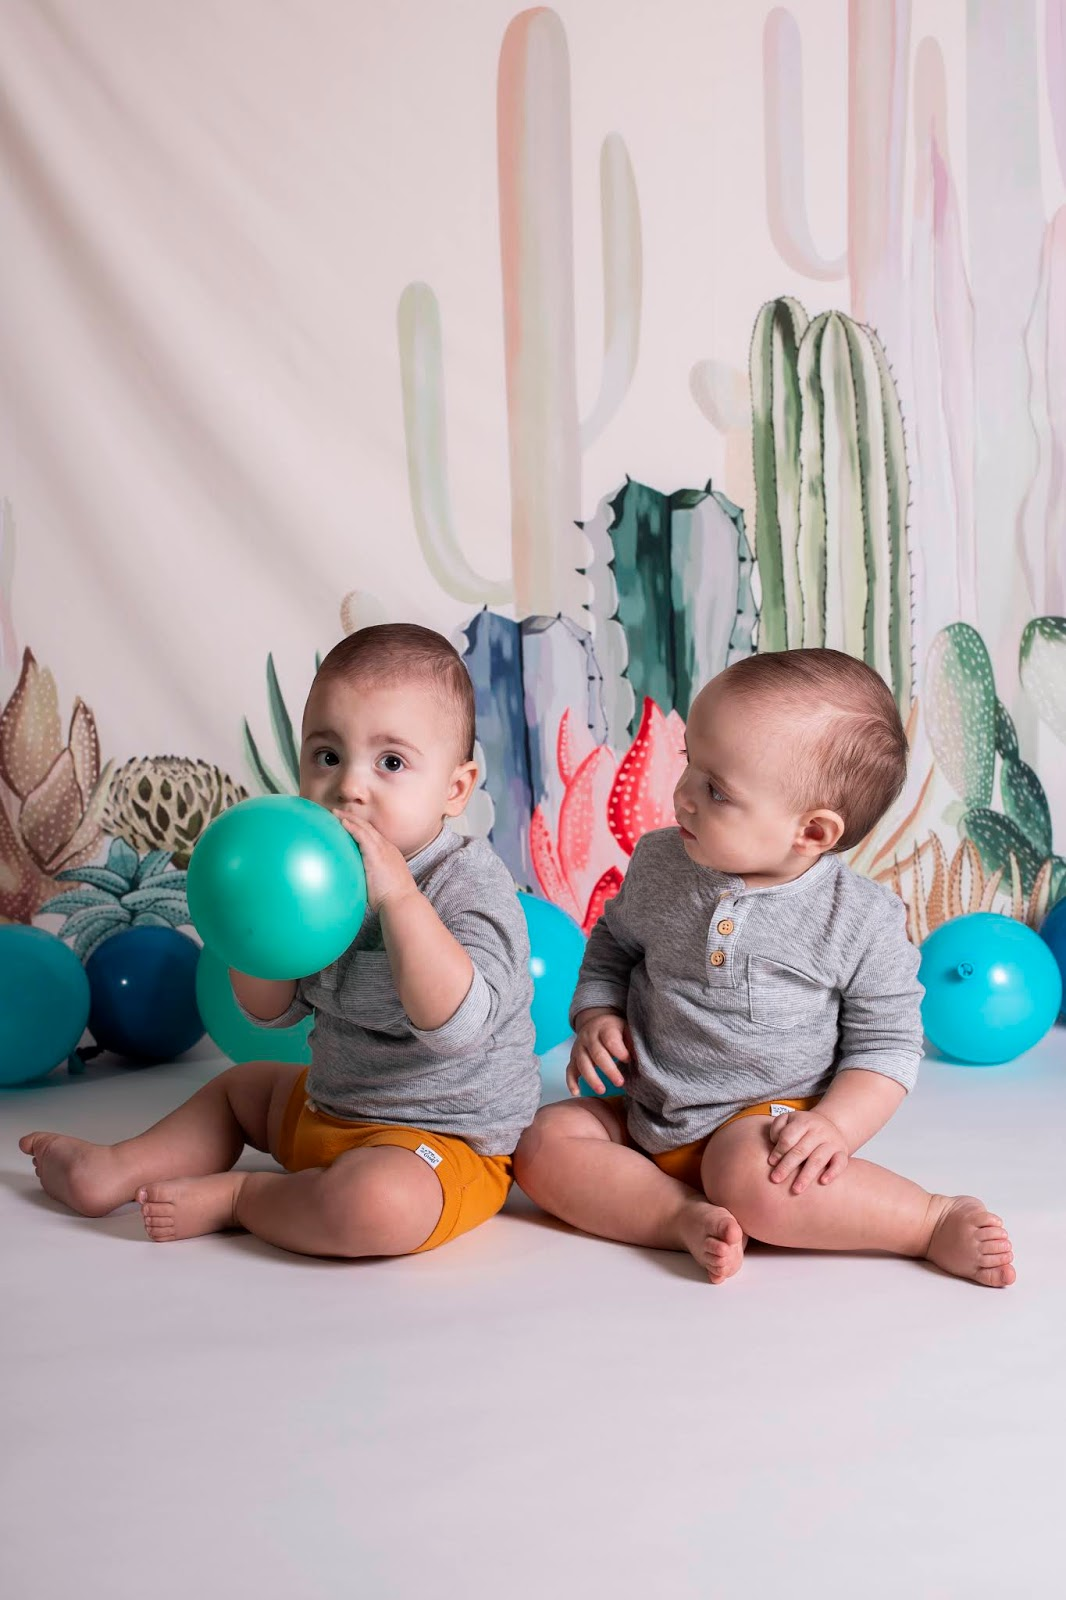 How to dress twins for birthday photos